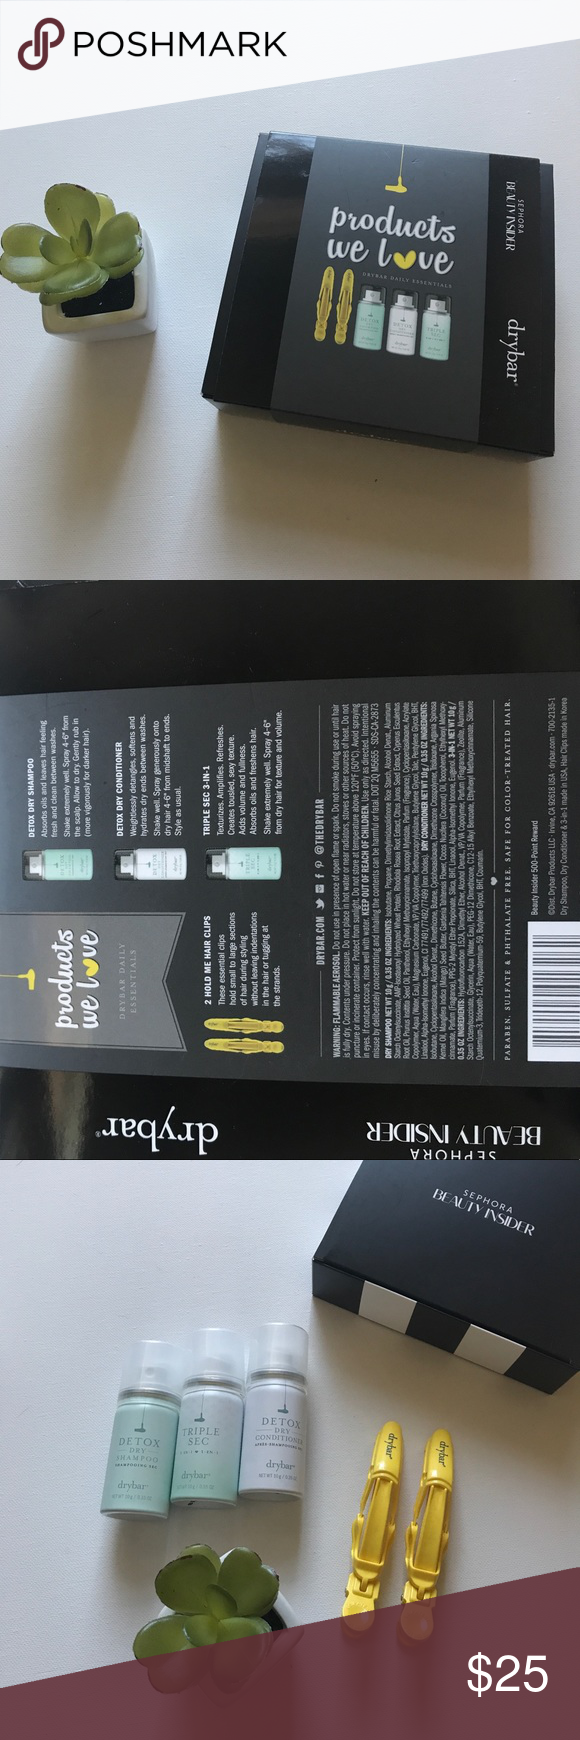 NWT Drybar Beauty Insider Box from Sephora Sephora Sephora makeup